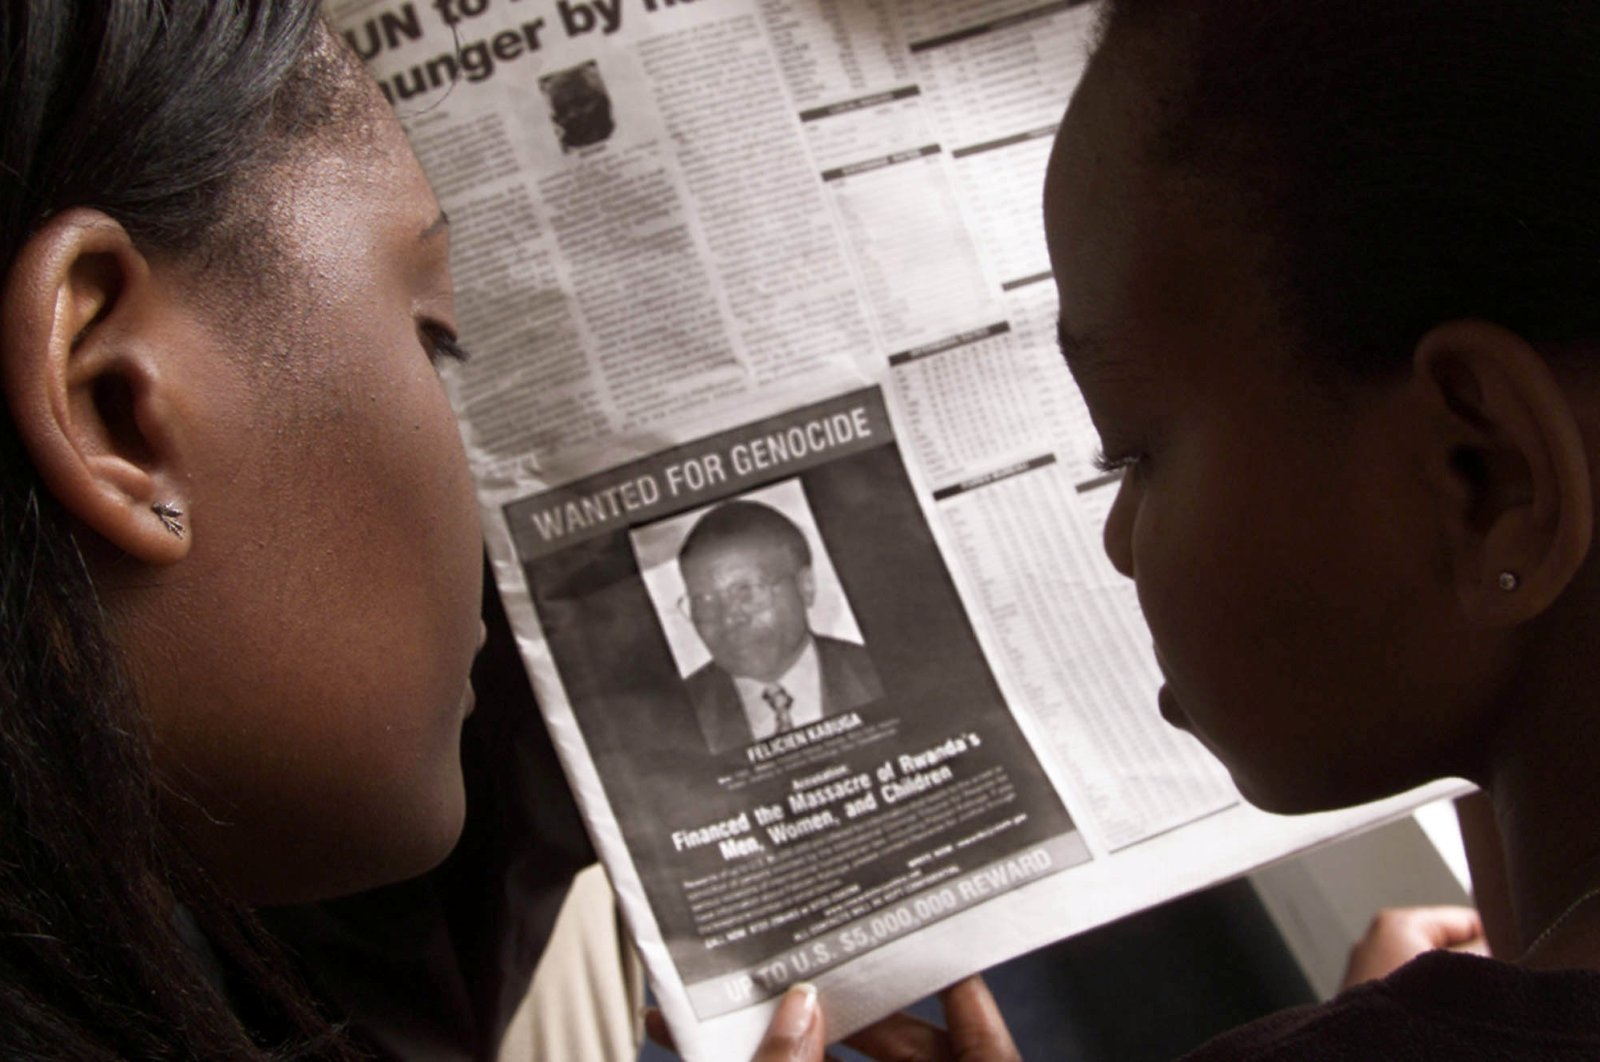 This June 12, 2002, file photo shows readers look at a newspaper carrying the photograph of Rwandan Felicien Kabuga wanted by the United States, in Nairobi, Kenya. (Reuters Photo)